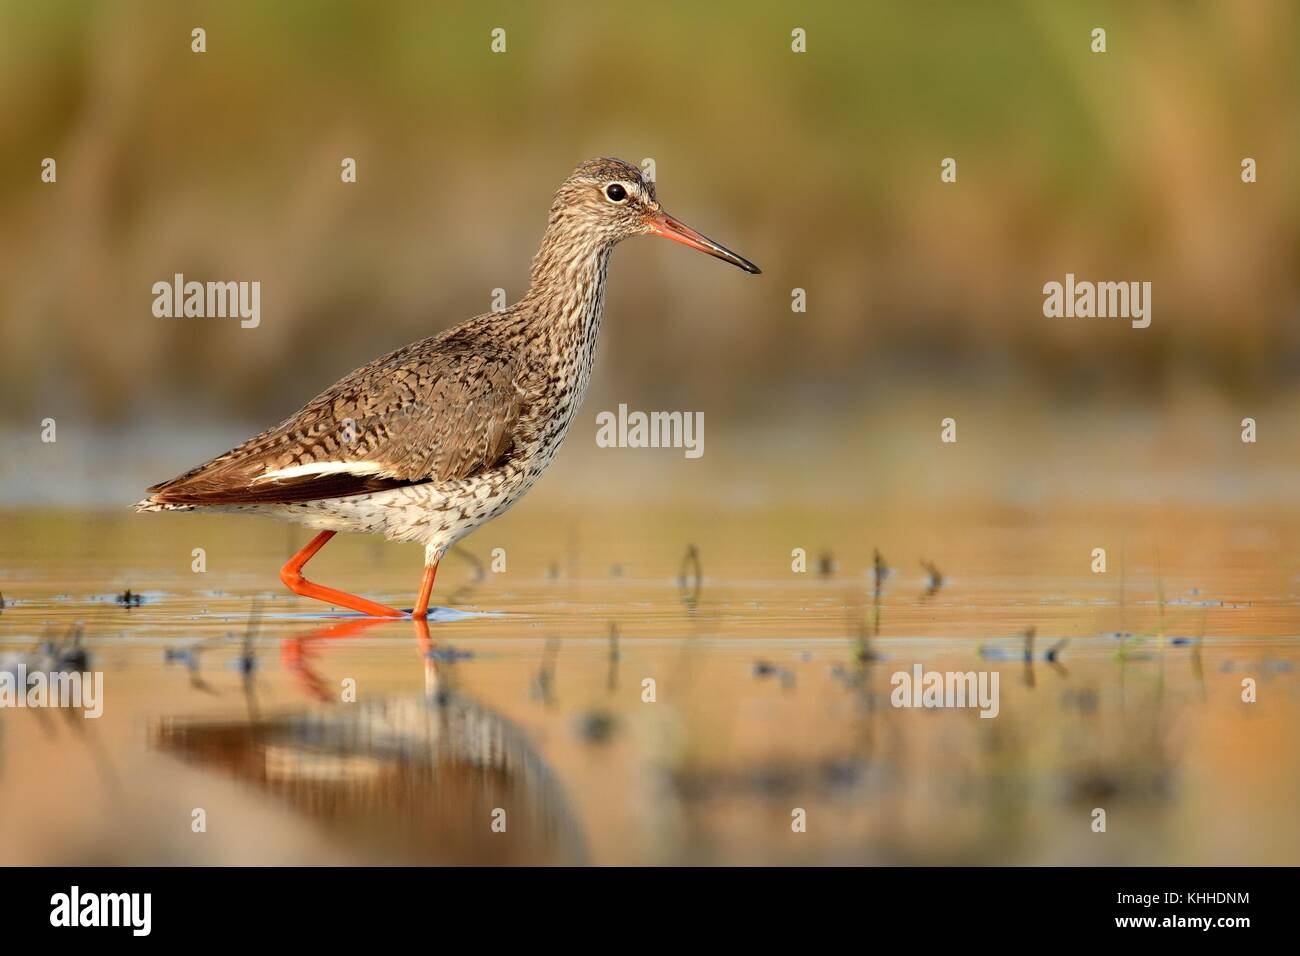 Common Redshank (Tringa totanus) staying in the water - Stock Image